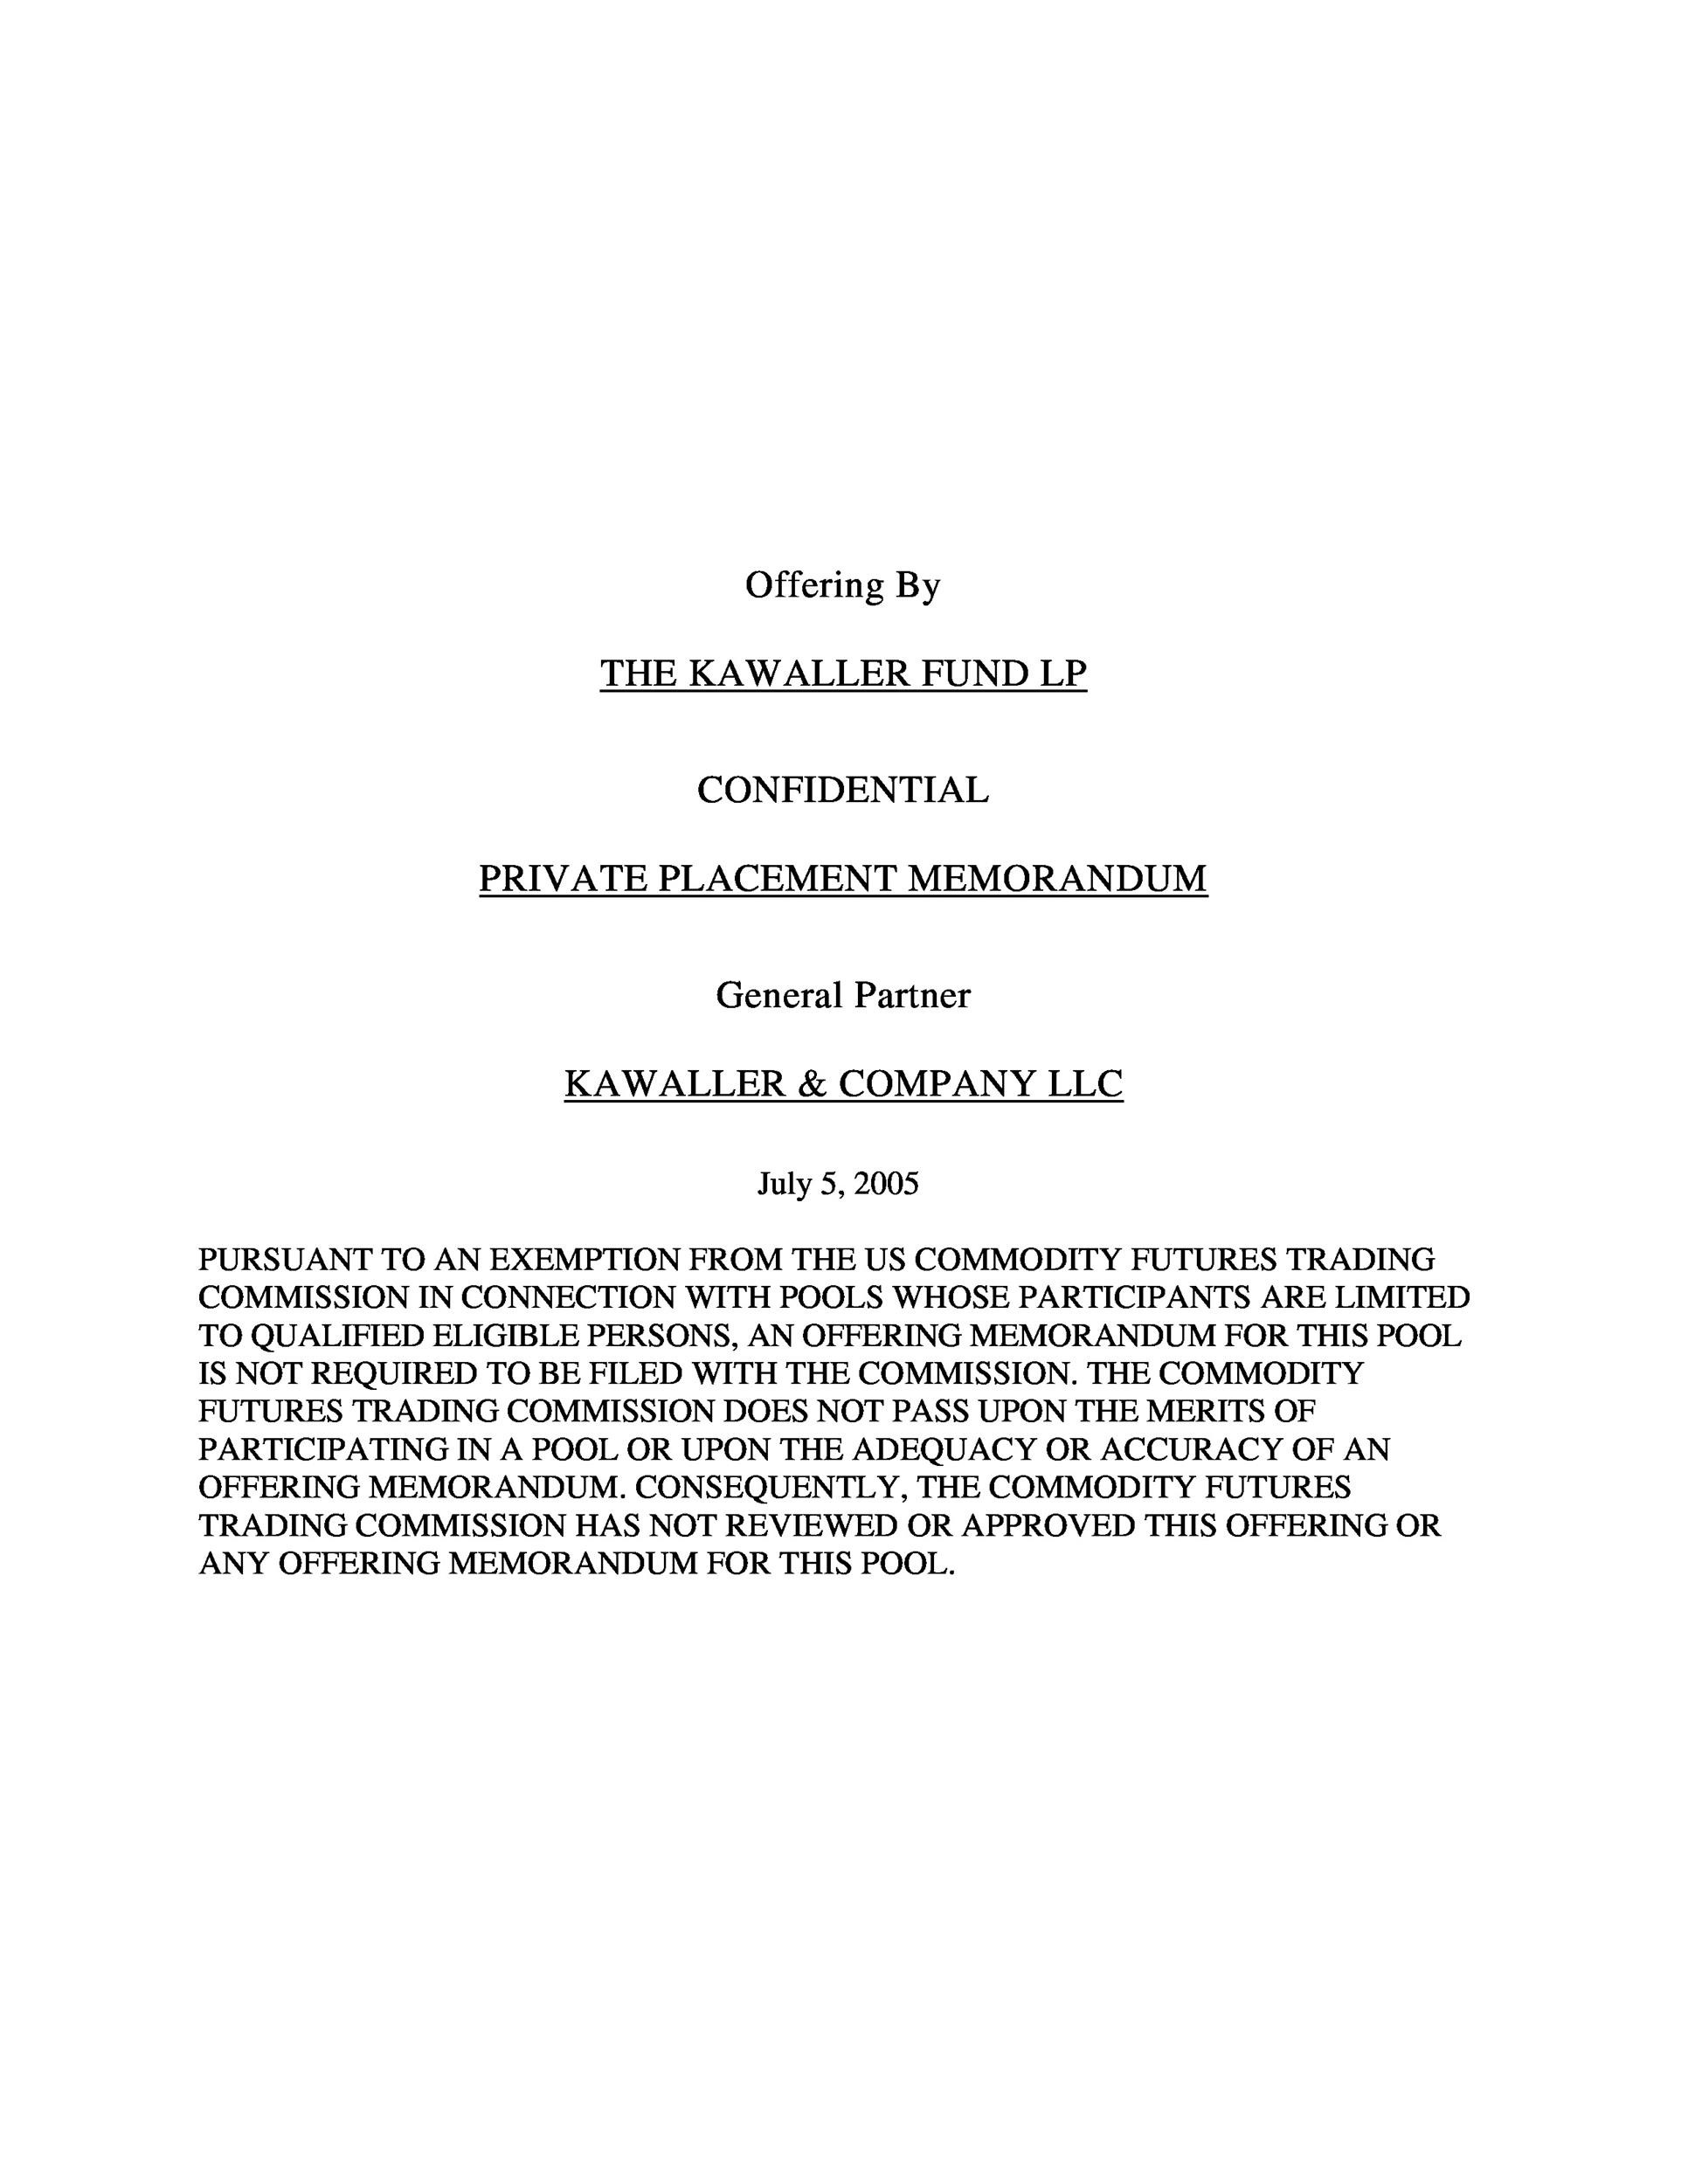 private placement memorandum template 35